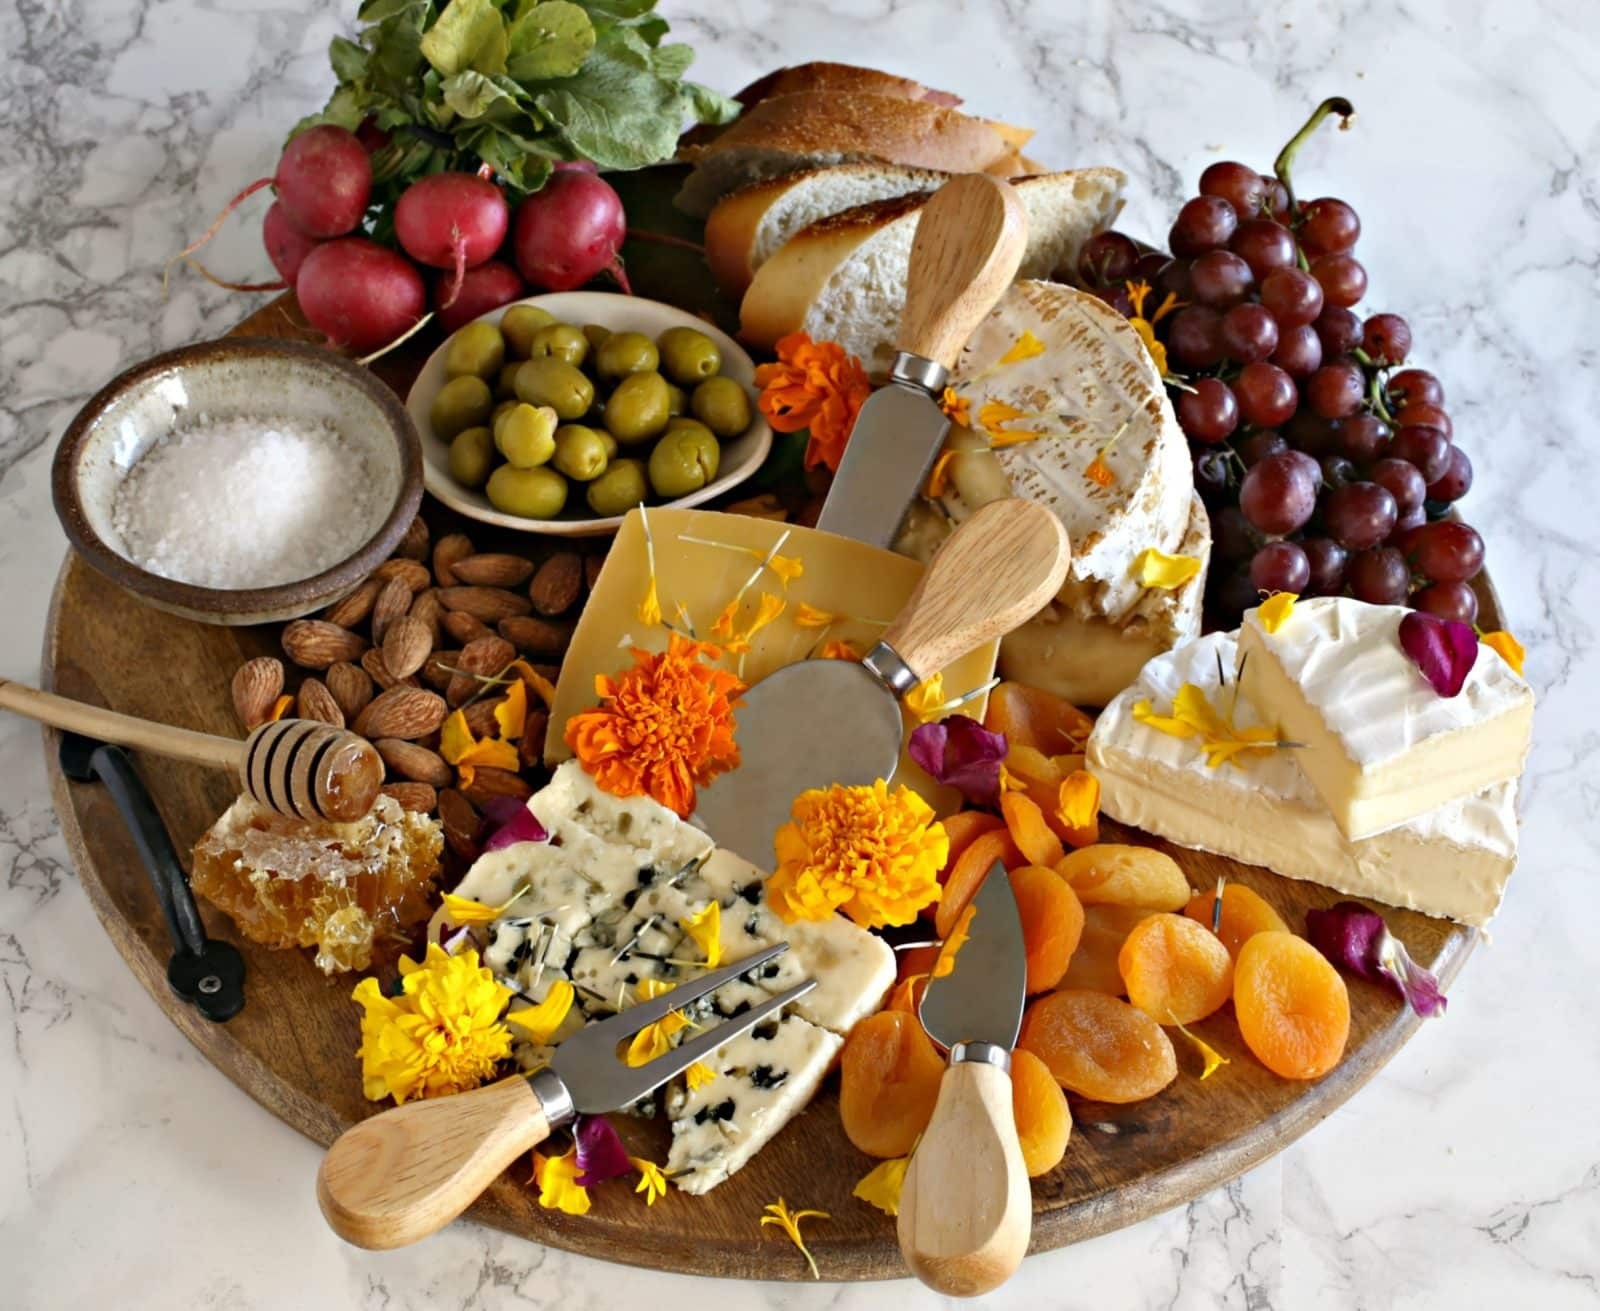 Cheese Board With Edible Flowers